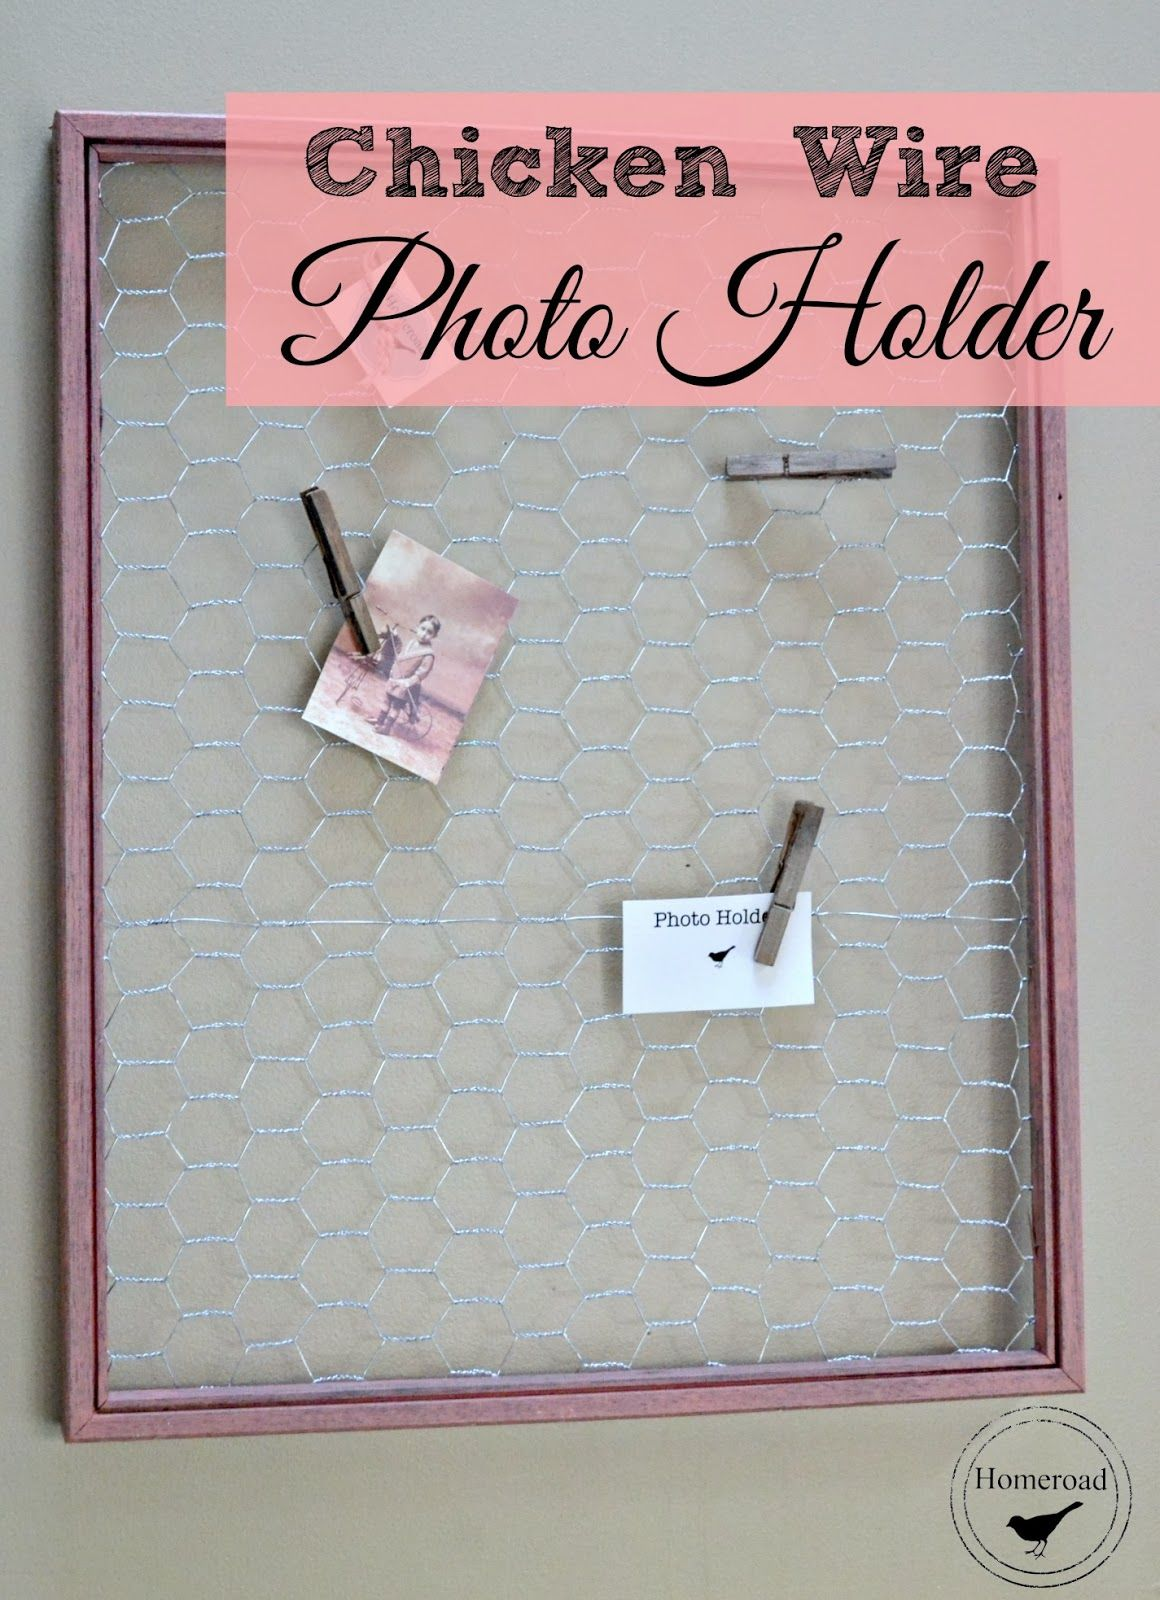 Homeroad chicken wire photo holder frames pinterest photo homeroad chicken wire photo holder jeuxipadfo Image collections